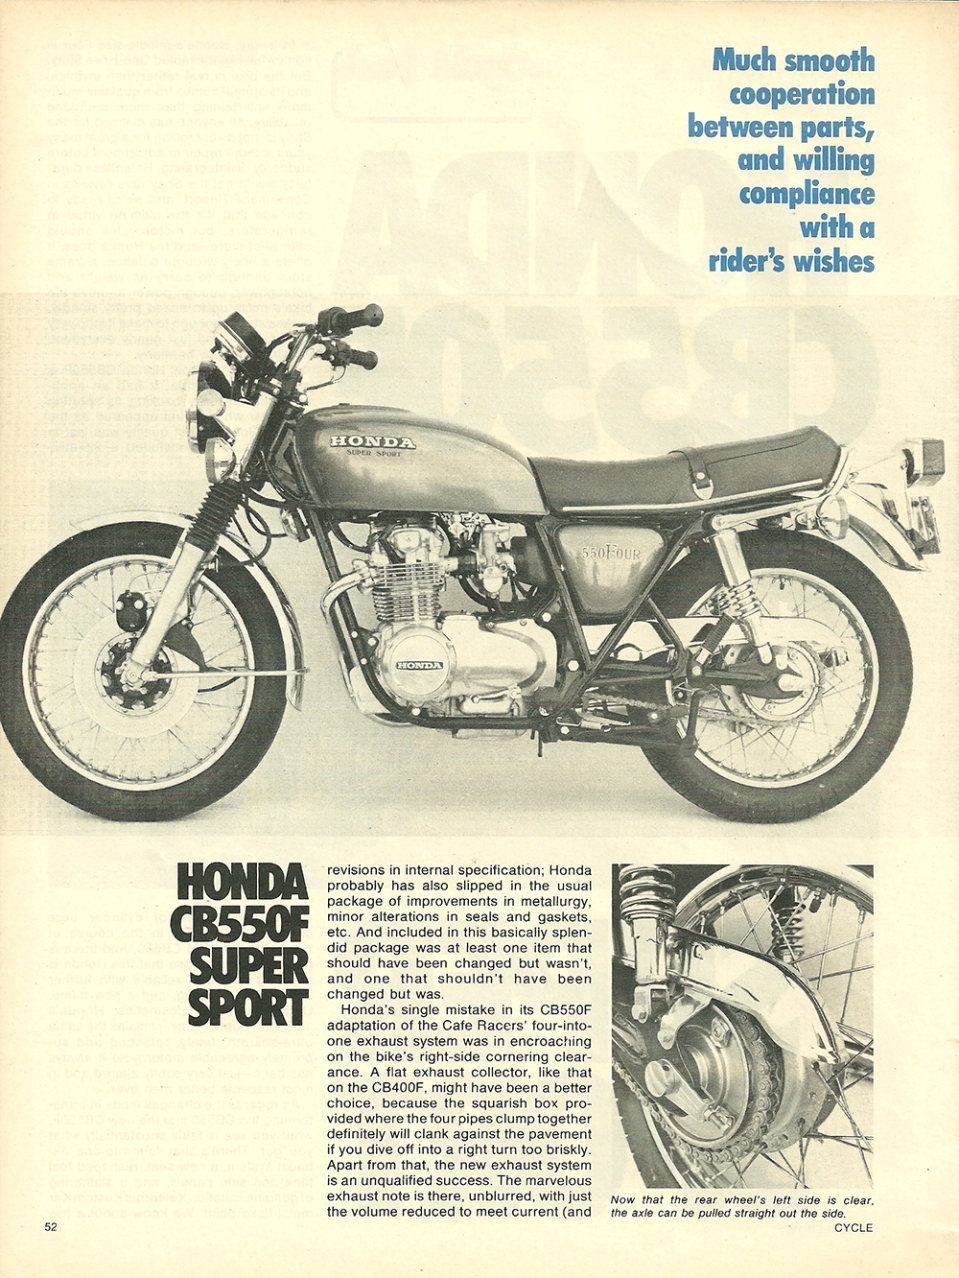 cycle-test-1975-honda-cb550f-super-sport-2